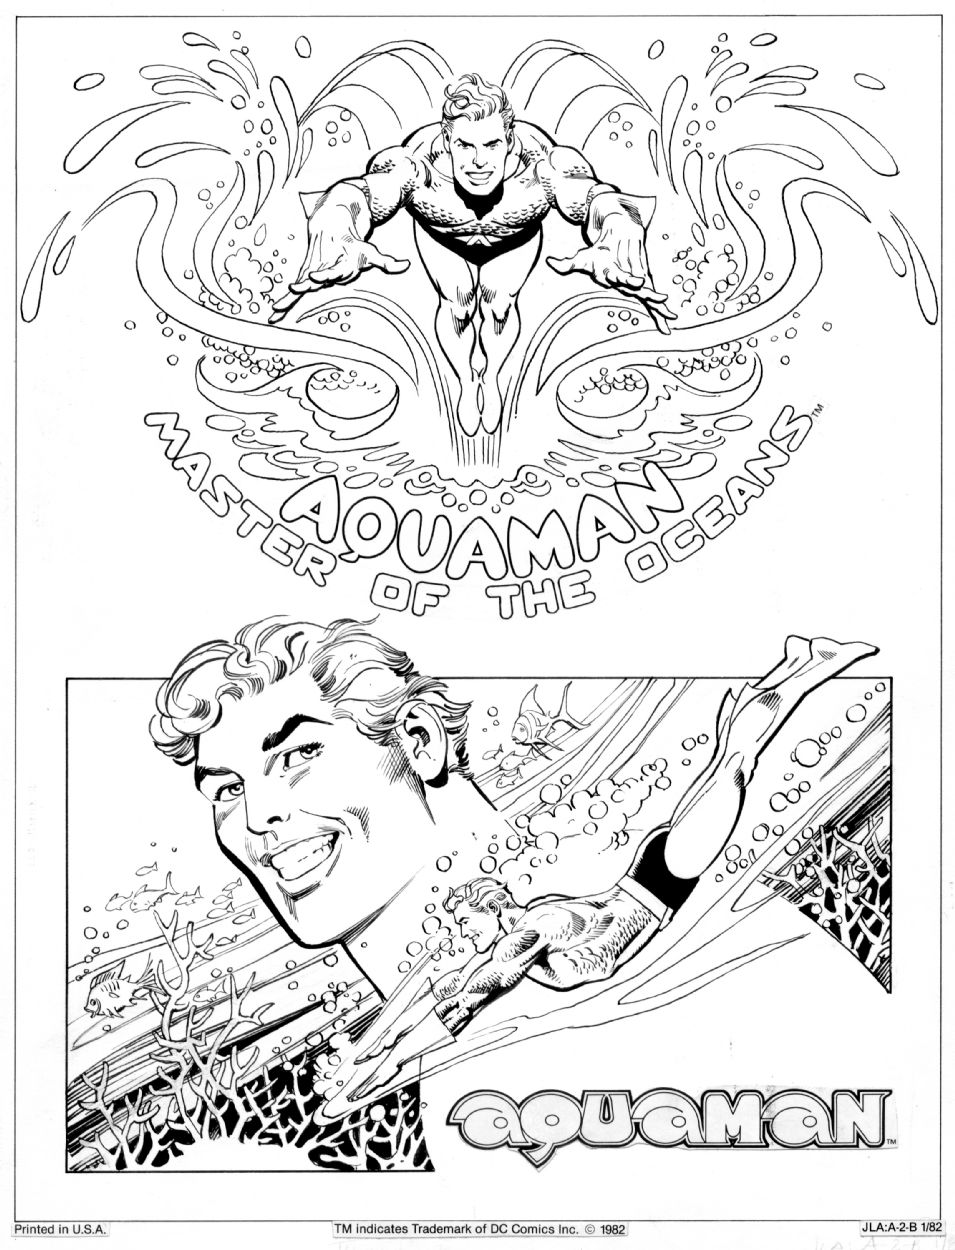 aquaman comic colouring page coloring pages pinterest aquaman